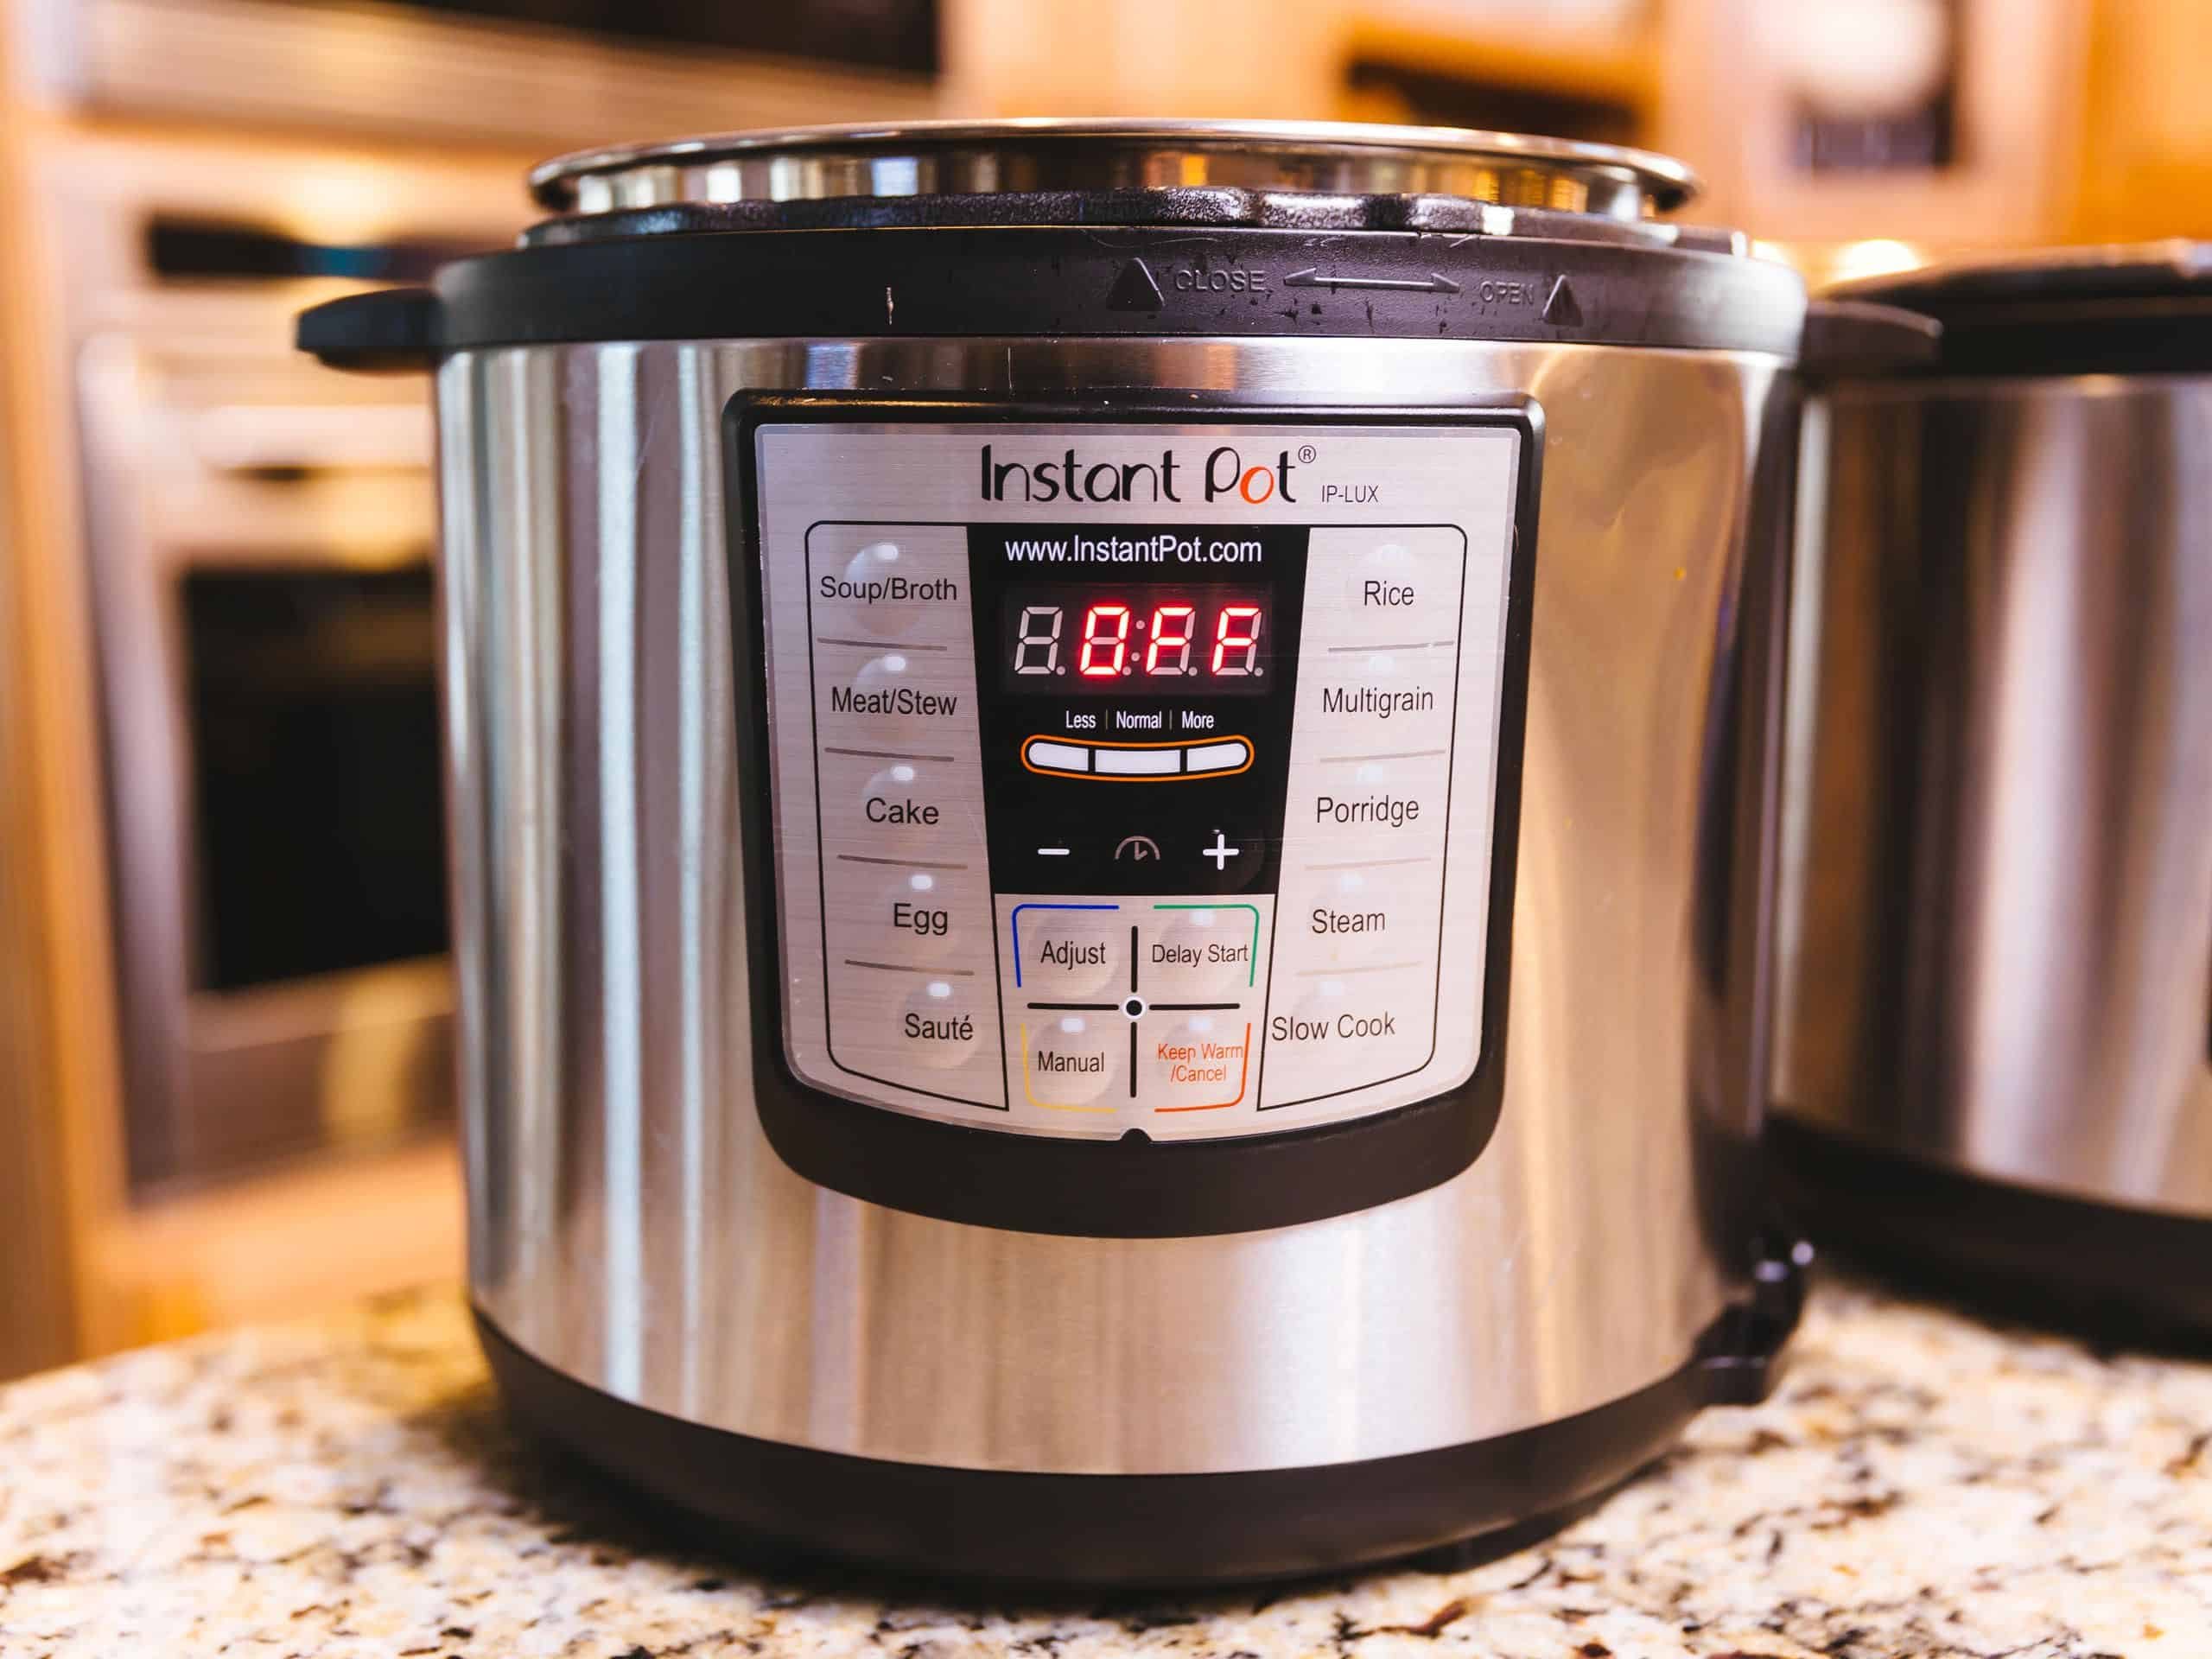 Instant Pot found to sterilise all bacteria